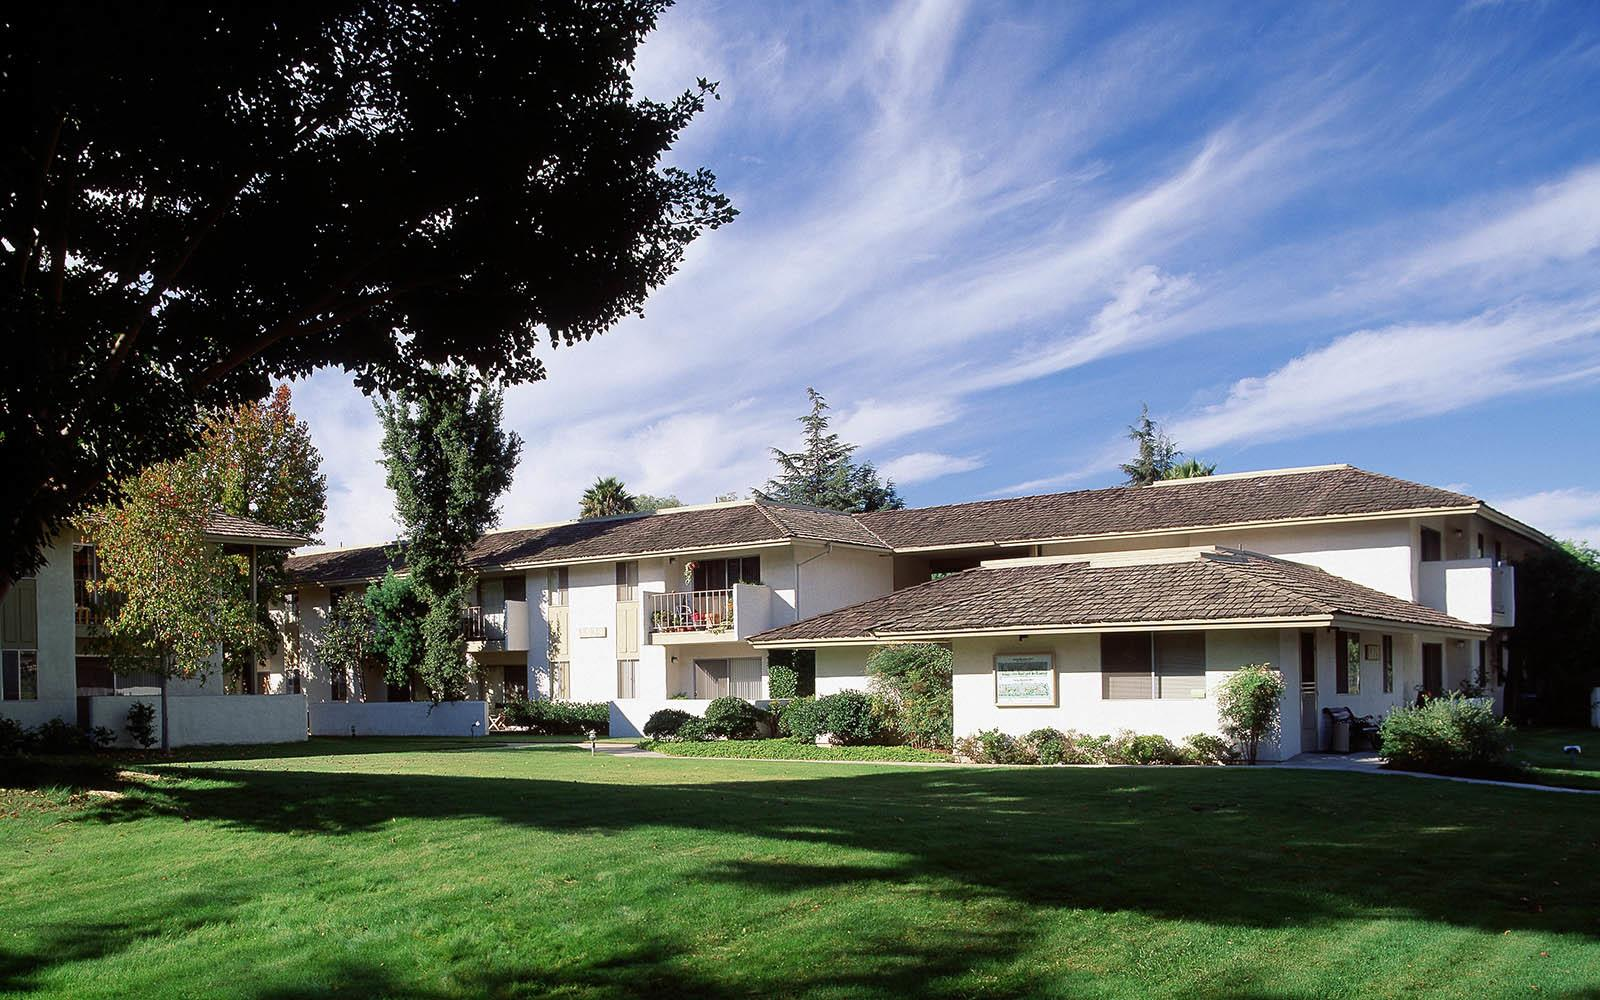 West Meadows Apartments